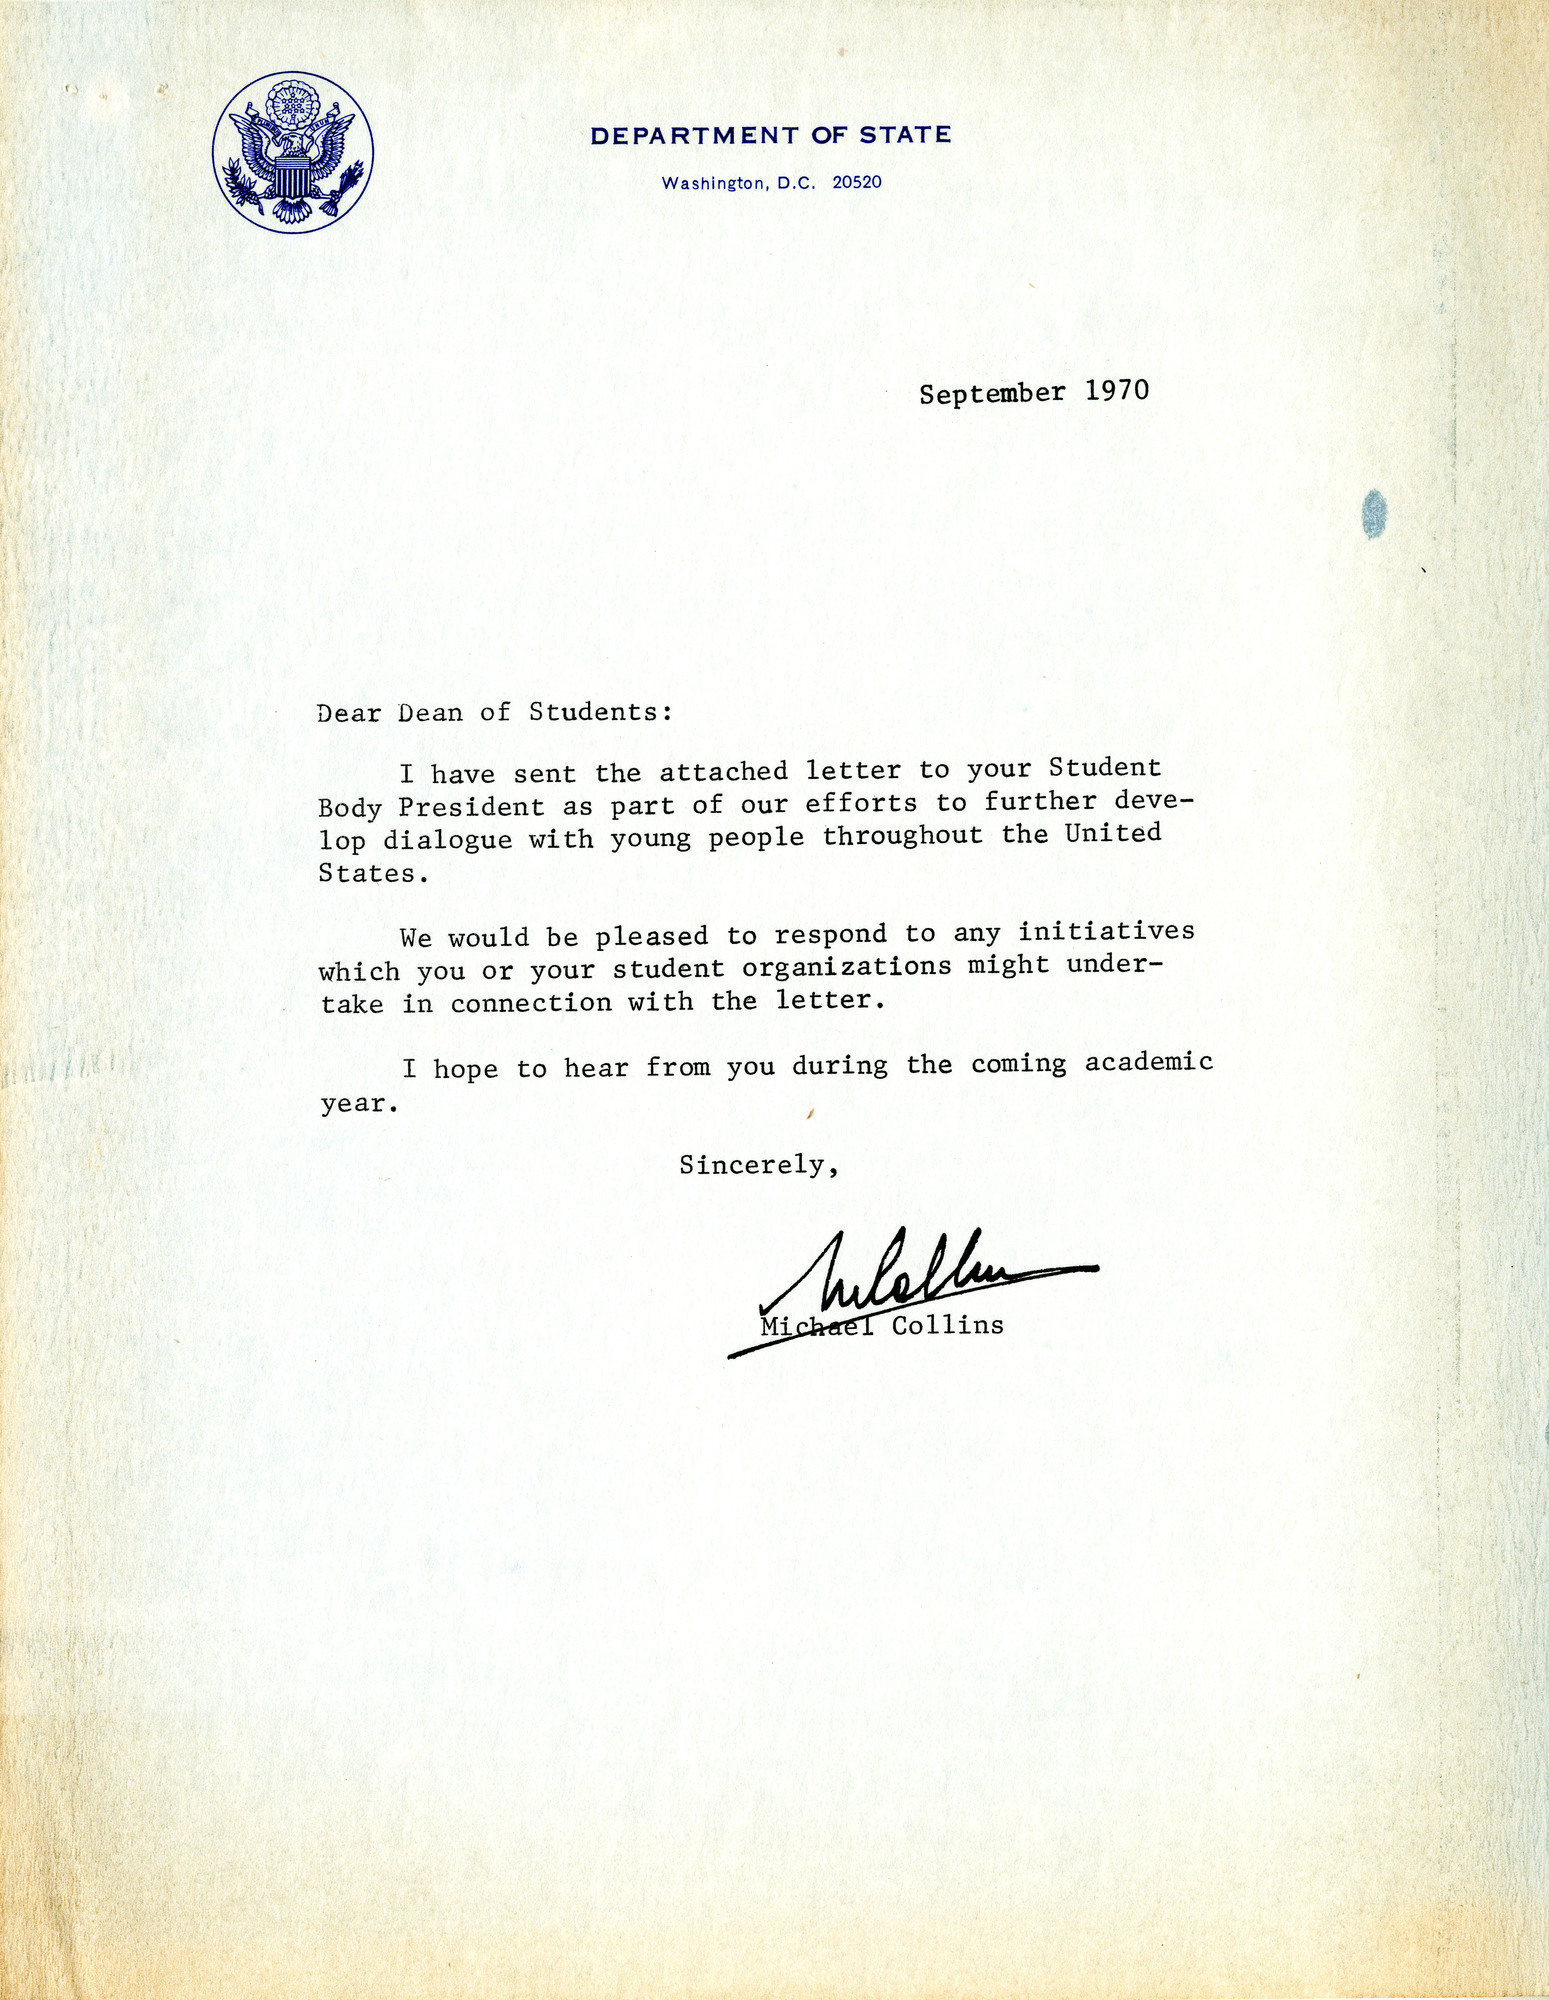 http://spec.lib.vt.edu/pickup/Omeka_upload/Ms1989-029_B18_F1_MichaelCollins_Letter_1970_0900_2.jpg